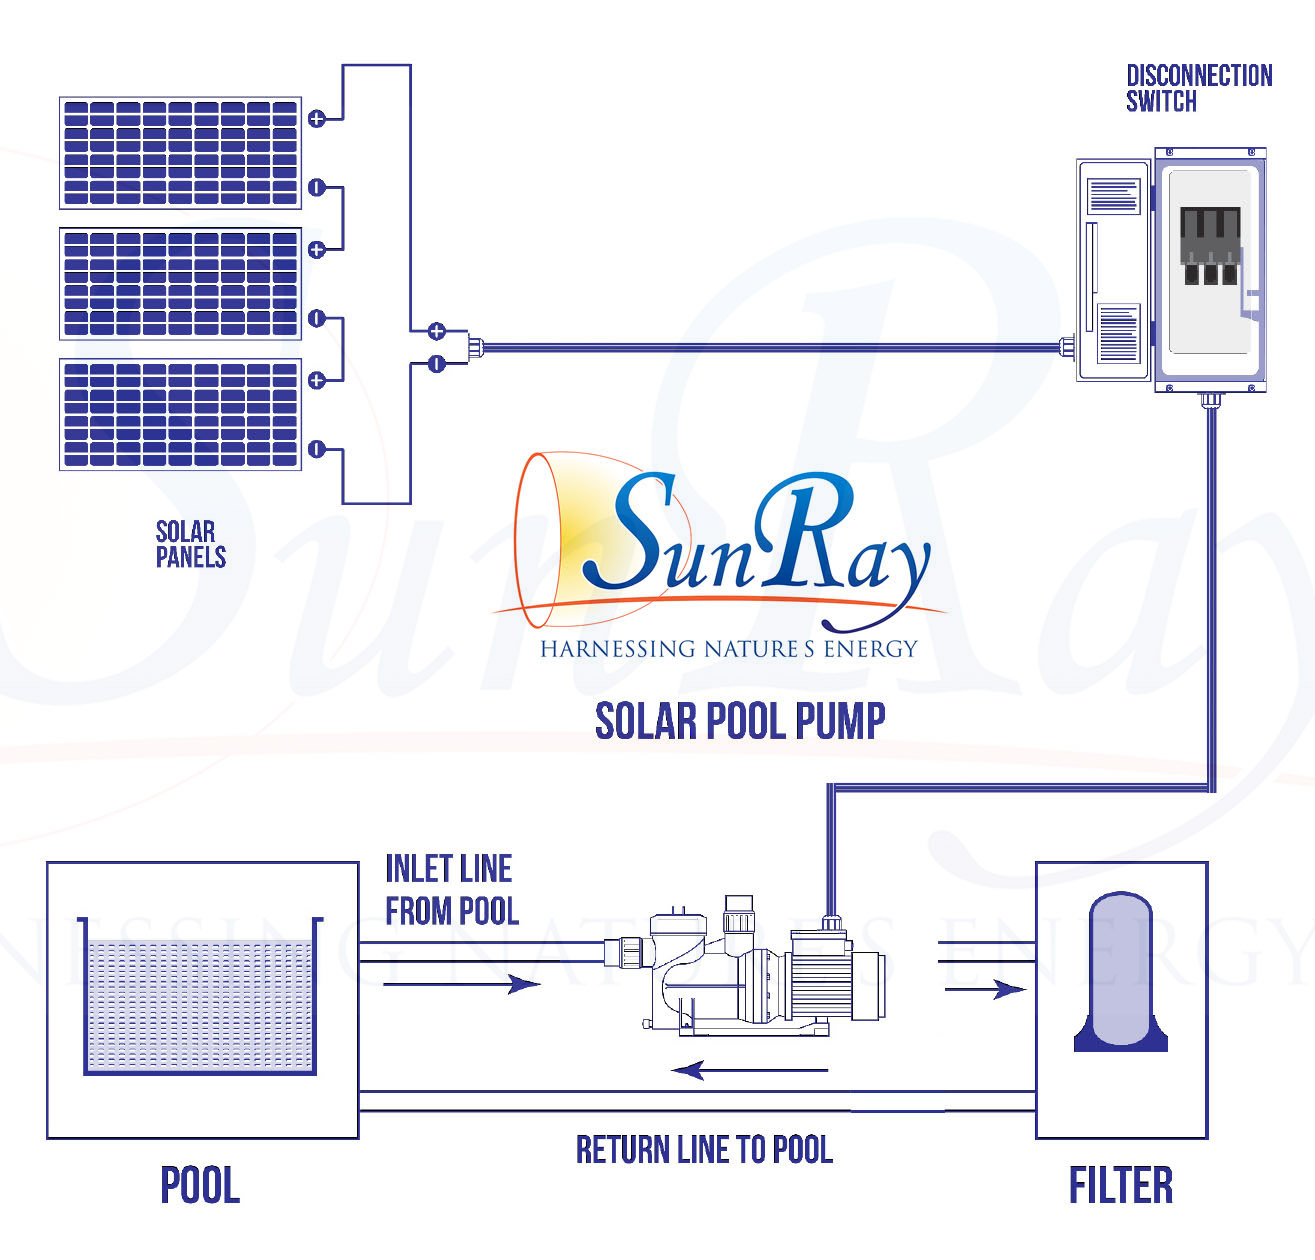 sunray solar pool pumps solar powered pool pumps residential rh sunrayus com